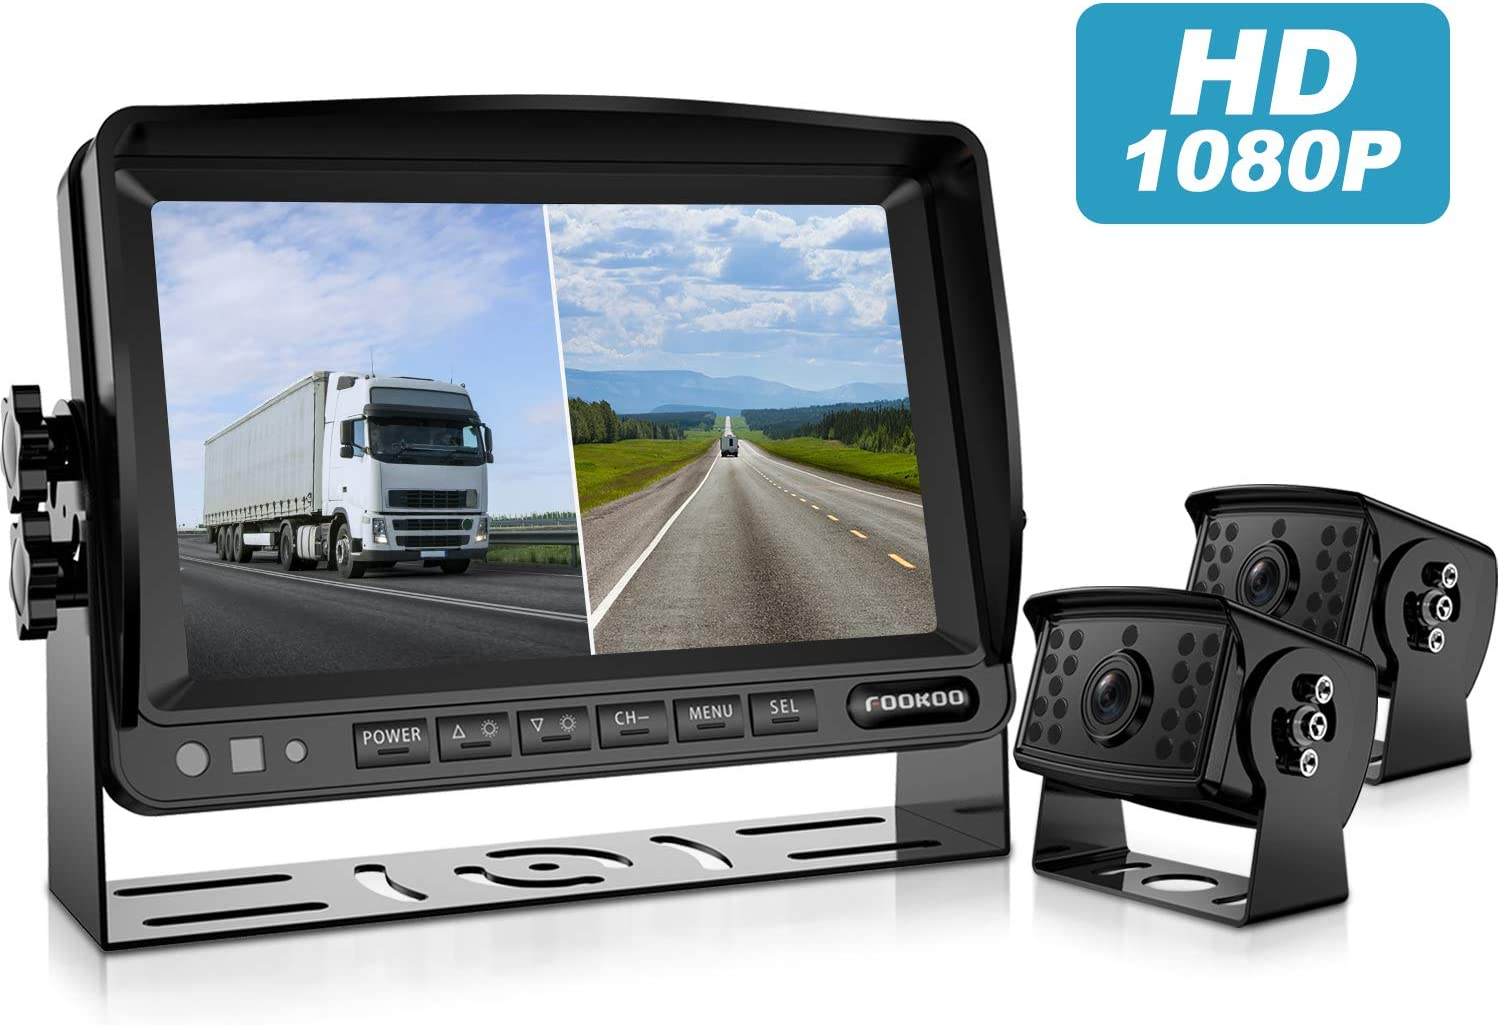 Fookoo Ⅱ HD 1080P Backup Camera System Kit,7'' Split Screen Monitor, IP69 Waterproof Rear View Camera for Truck/Semi-Trailer/Box Truck/RV, Sharp CCD Chip, 100% Not Wash Up (FHD2-Wired)